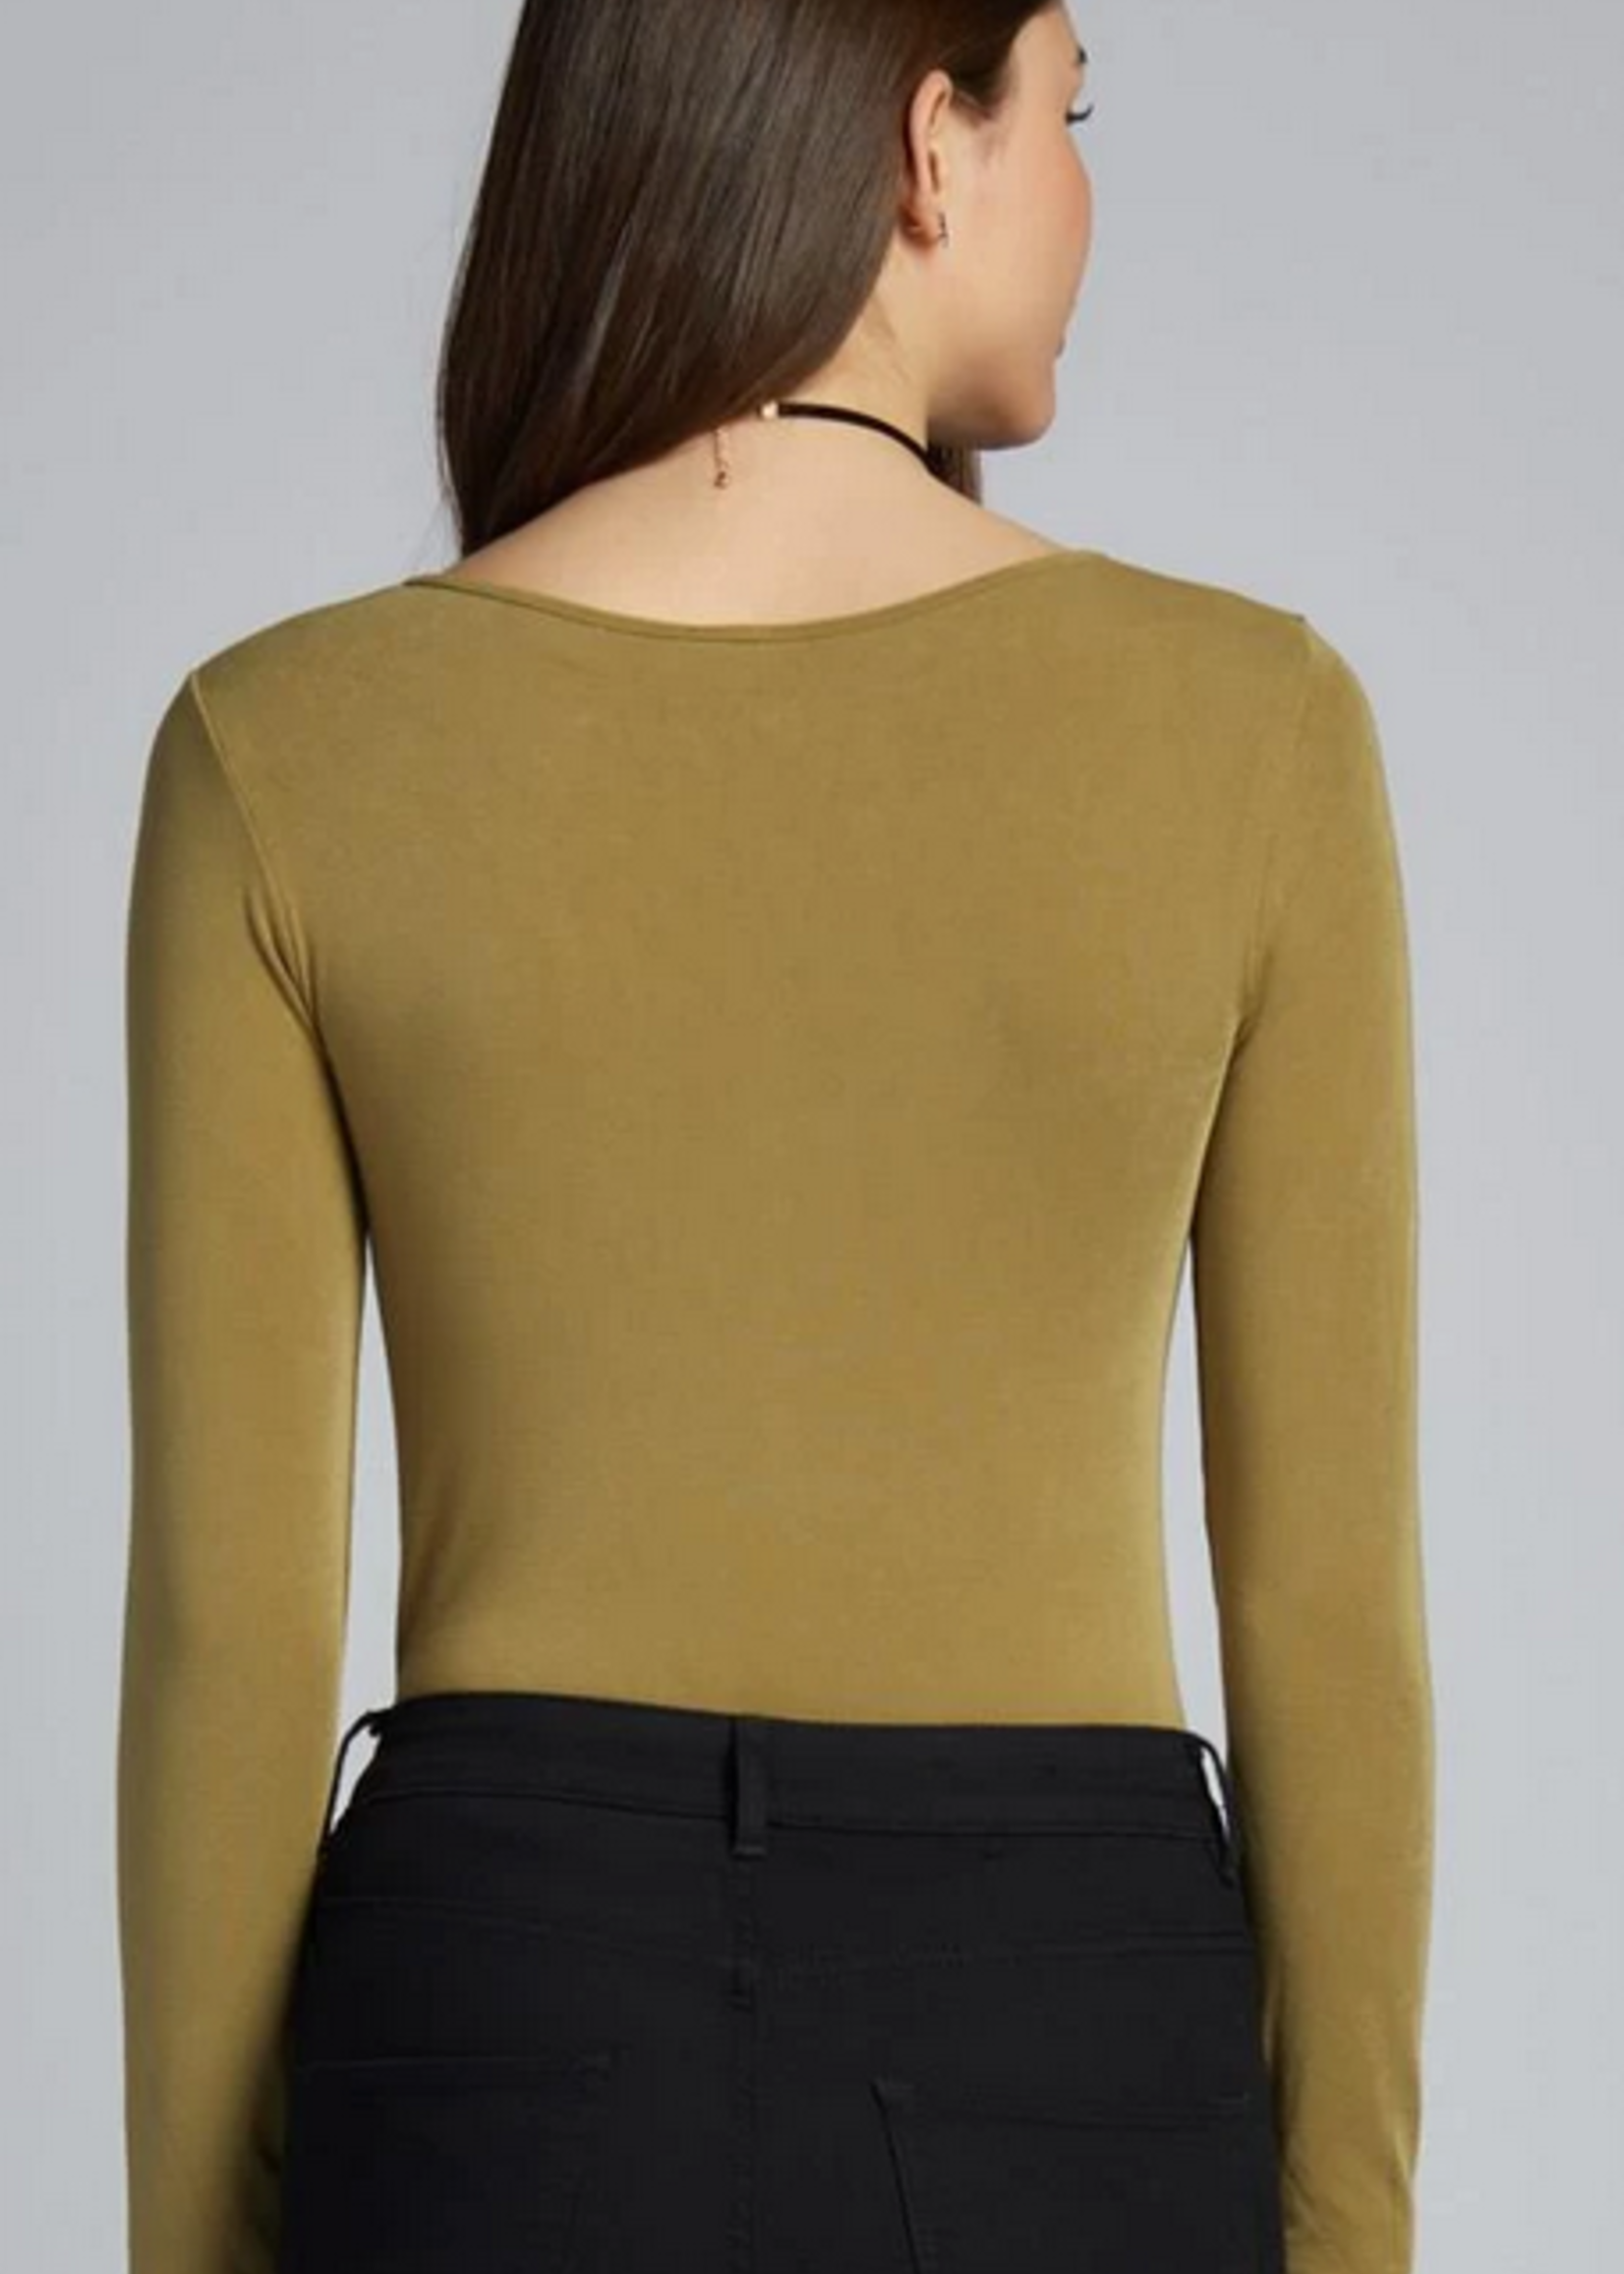 CEST MOI CLOTHING BAMBOO LONG SLEEVE V NECK TOP